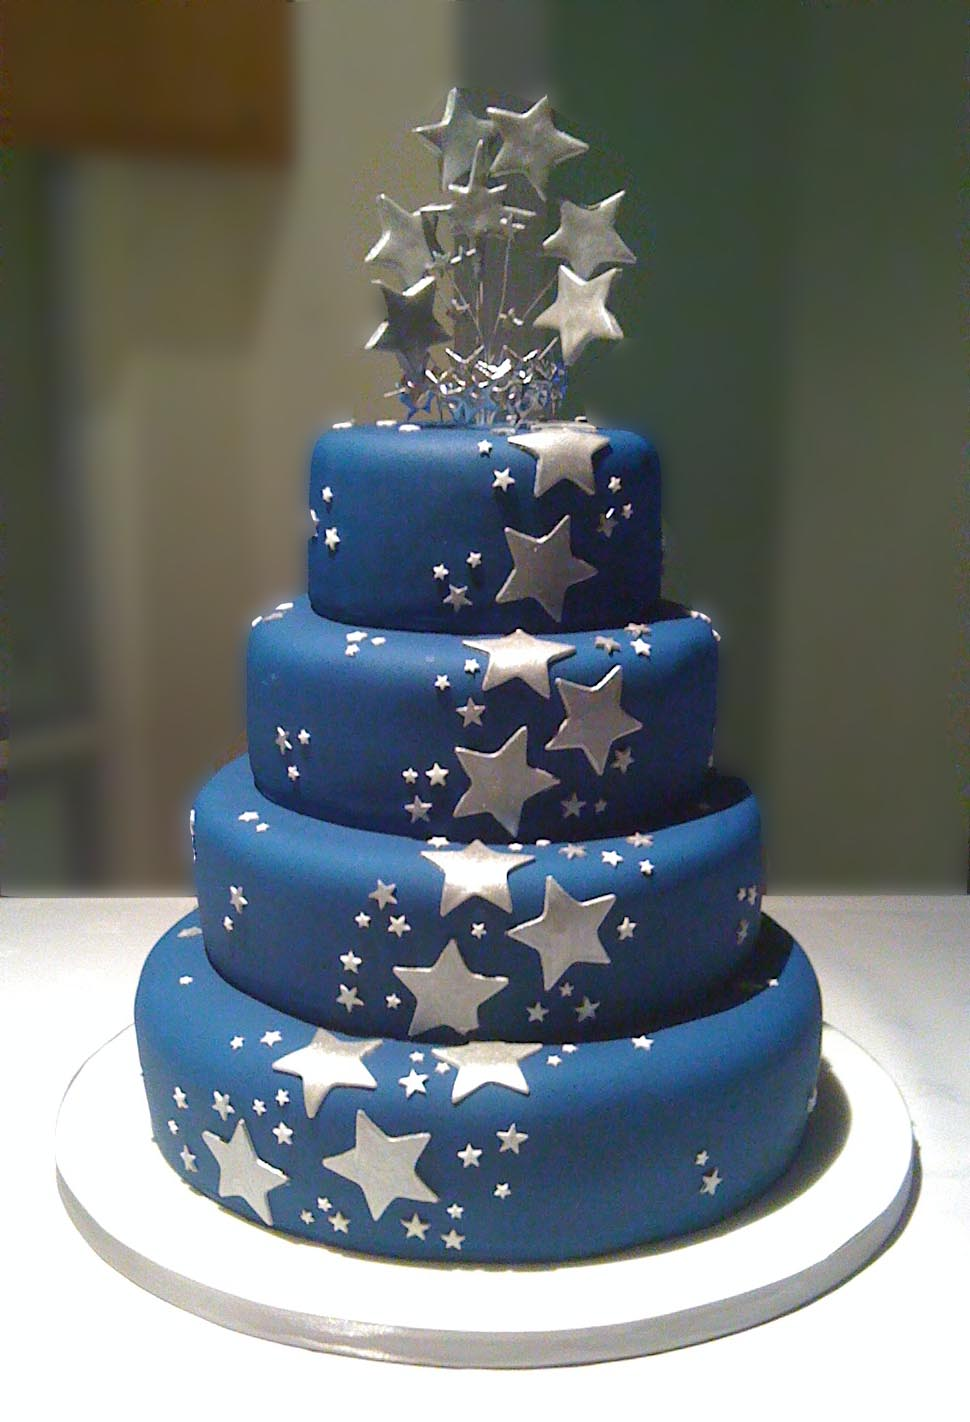 blue and silver wedding cake ideas chiara e maurizio matrimonio con lo sponsor matrimonio 11960